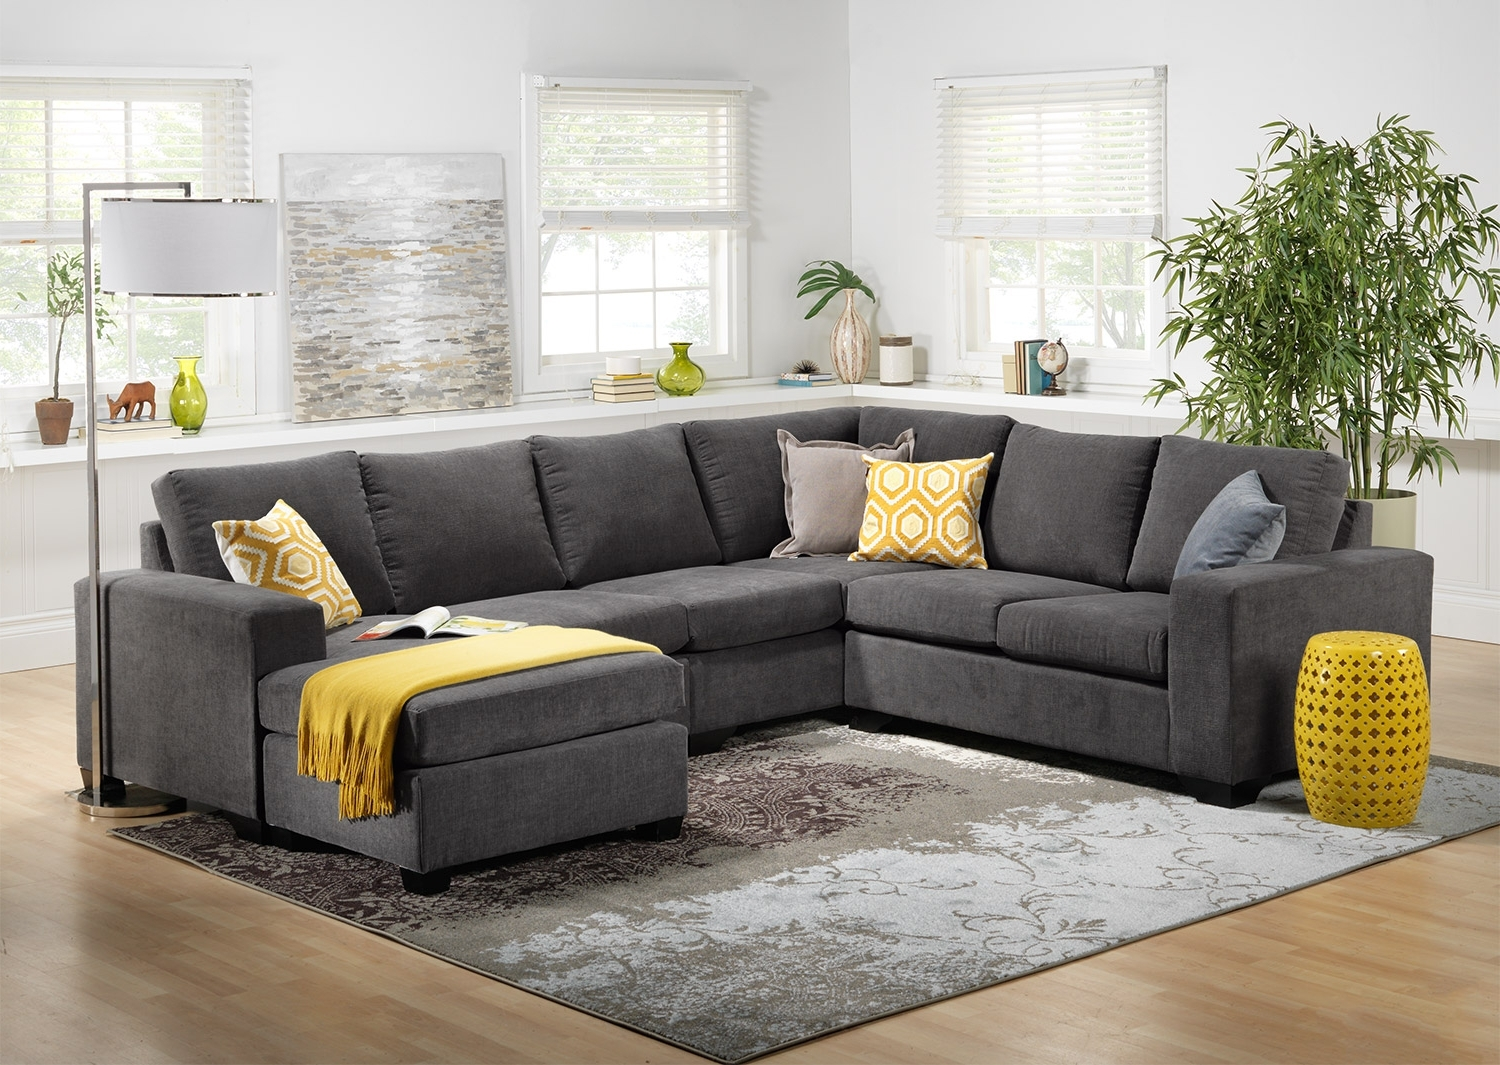 Danielle 3 Piece Sectional With Right Facing Corner Wedge – Grey Within Current Scarborough Sectional Sofas (View 5 of 20)